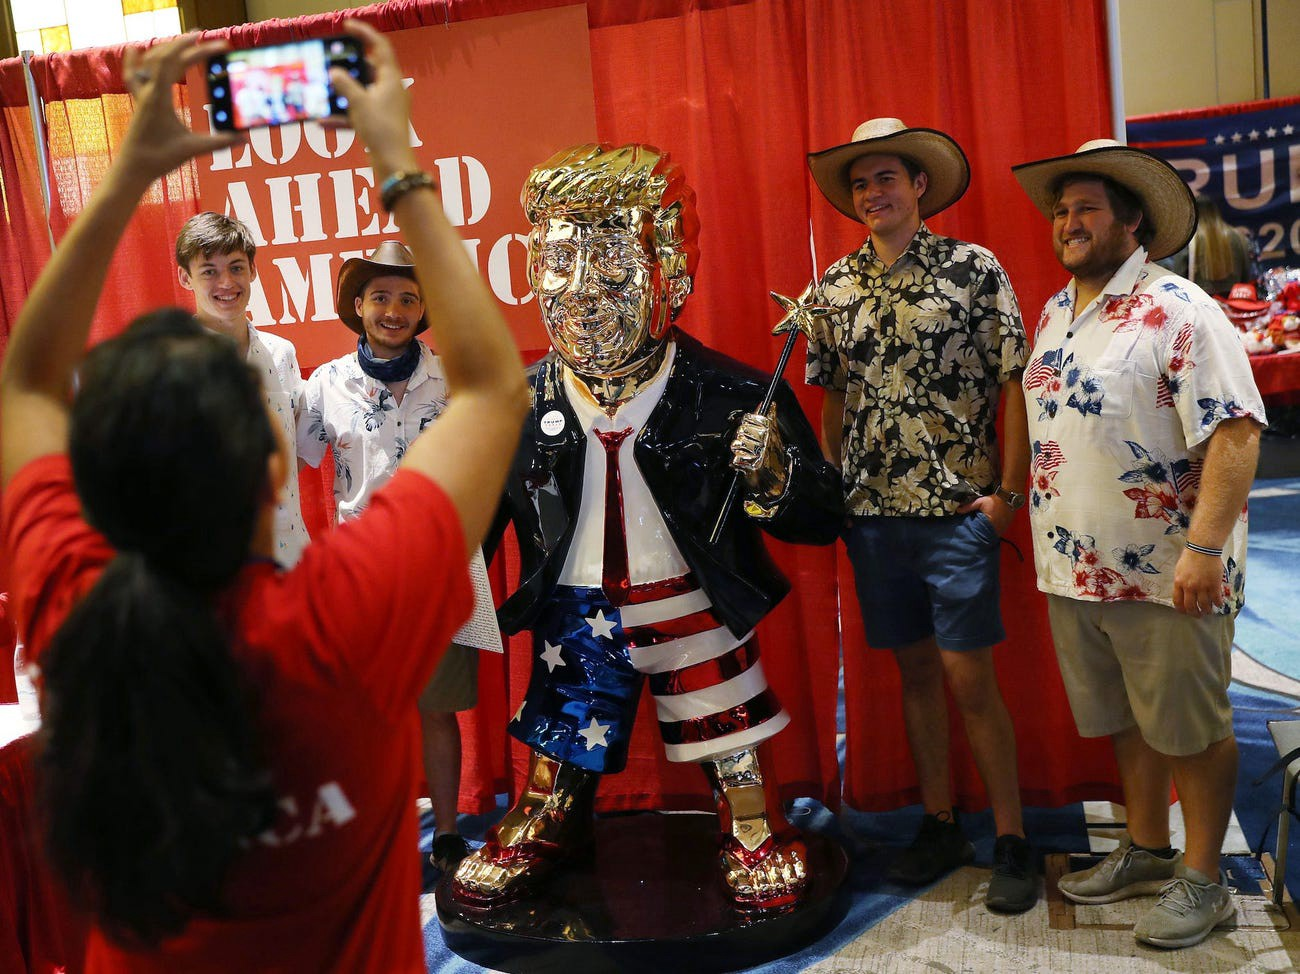 People take a picture with former President Donald Trump's statue on display at CPAC.